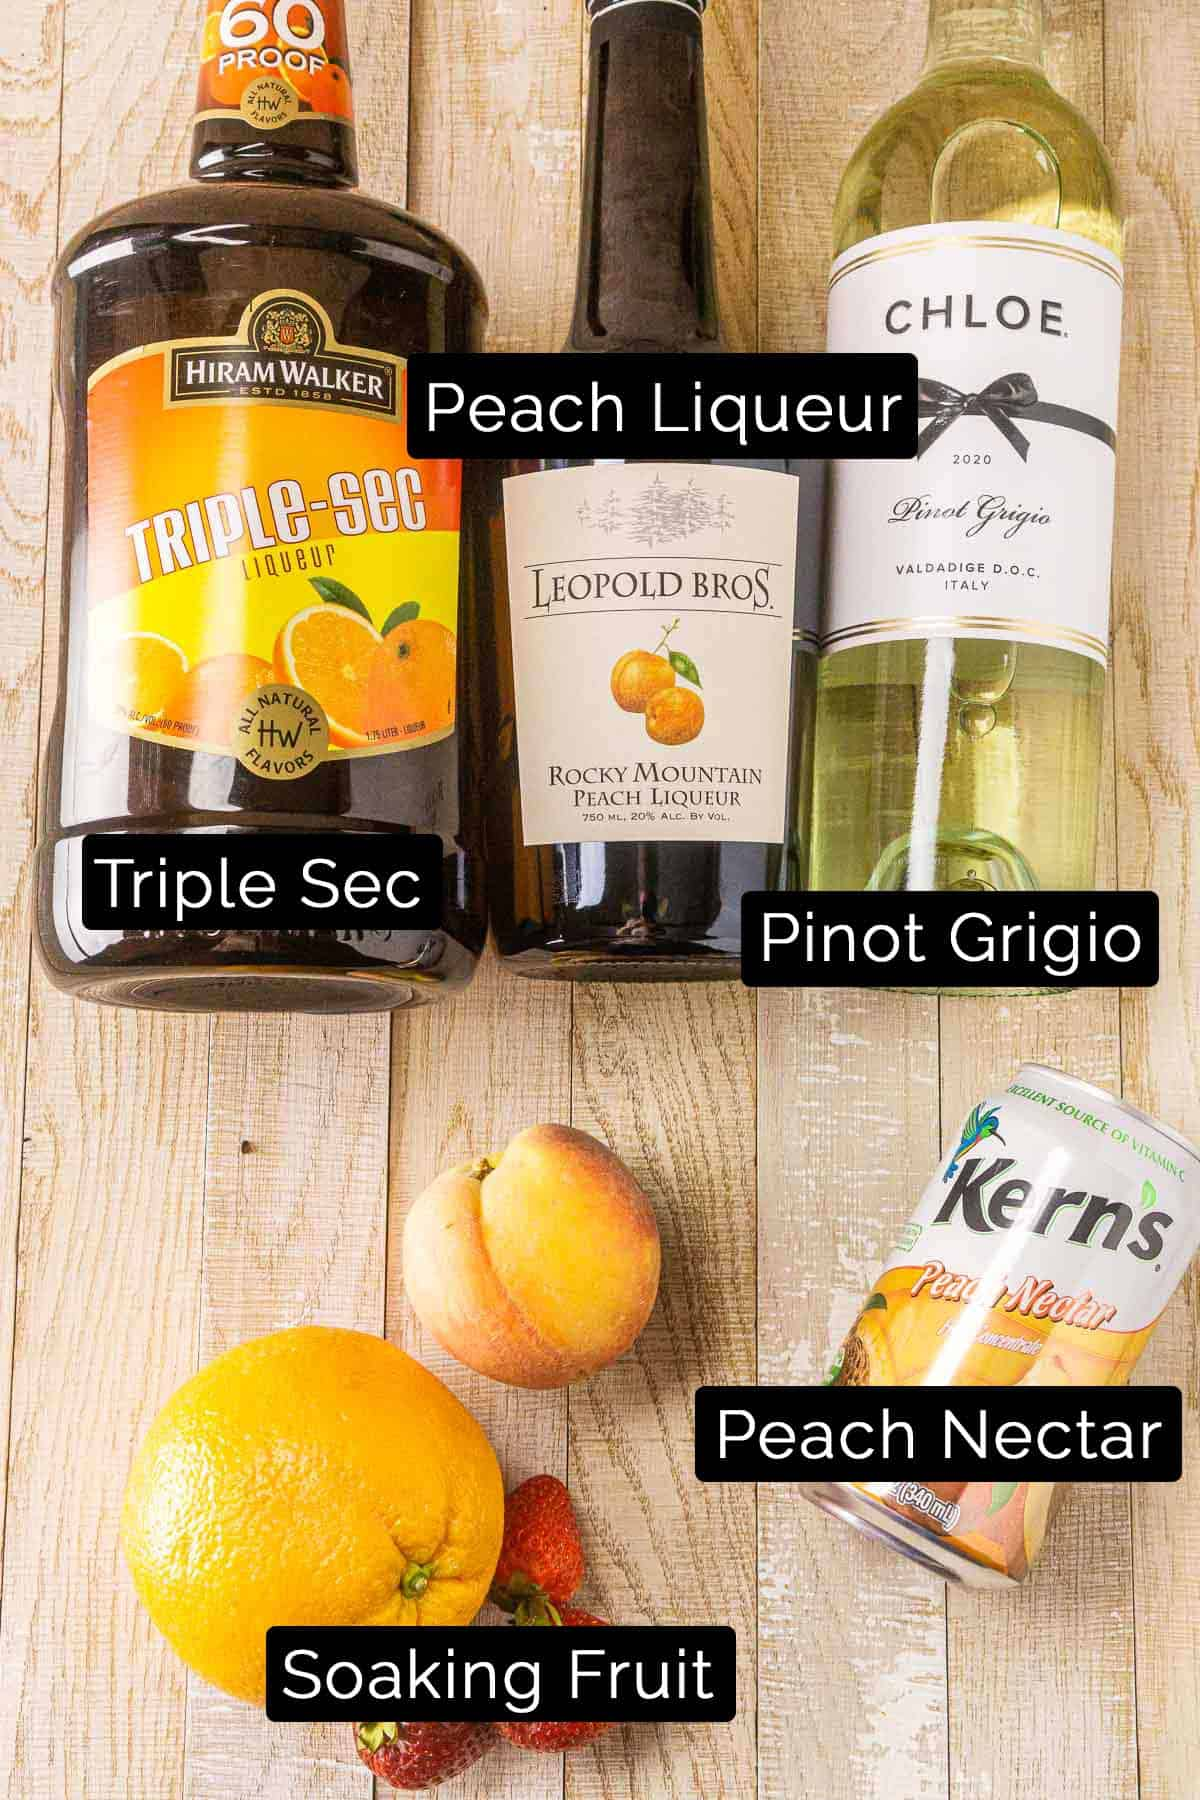 The peach sangria ingredients with black and white labels.